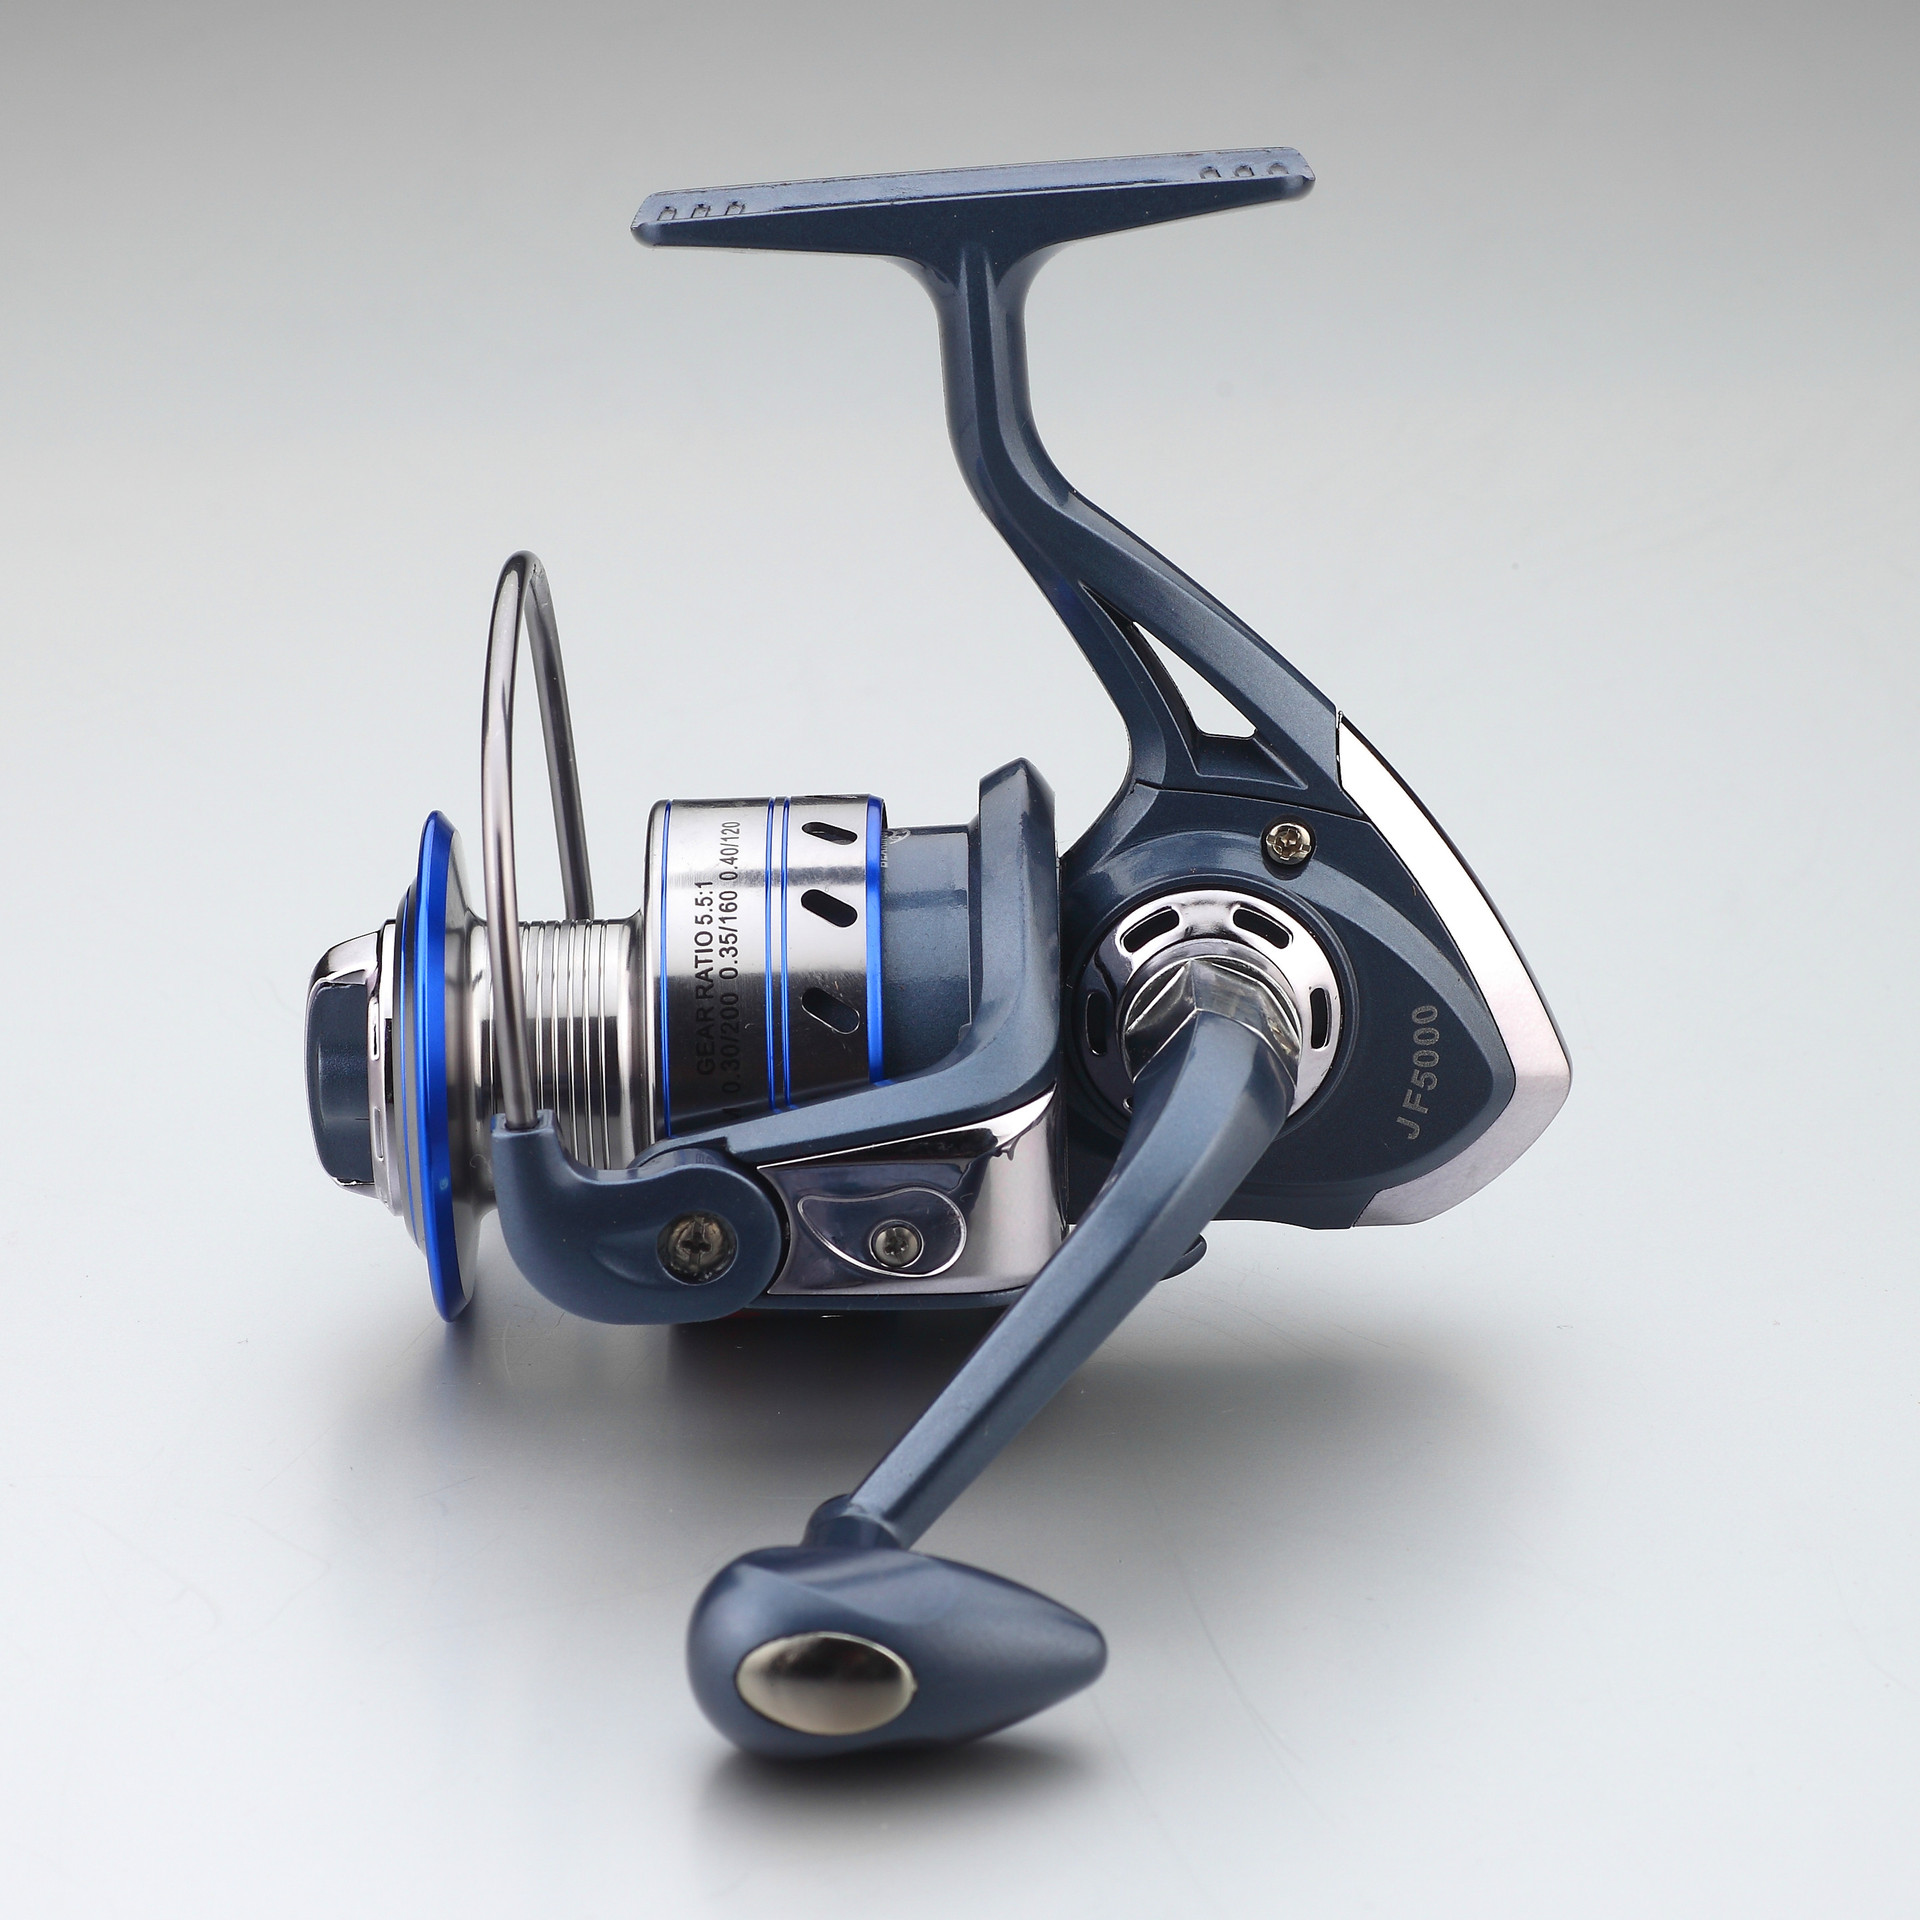 angling and right fishing reel Find west cornwall angling in  search for local fishing tackle  we aim to equipt you to enjoy the cornish scenery with the right rod, reel and bait with some.